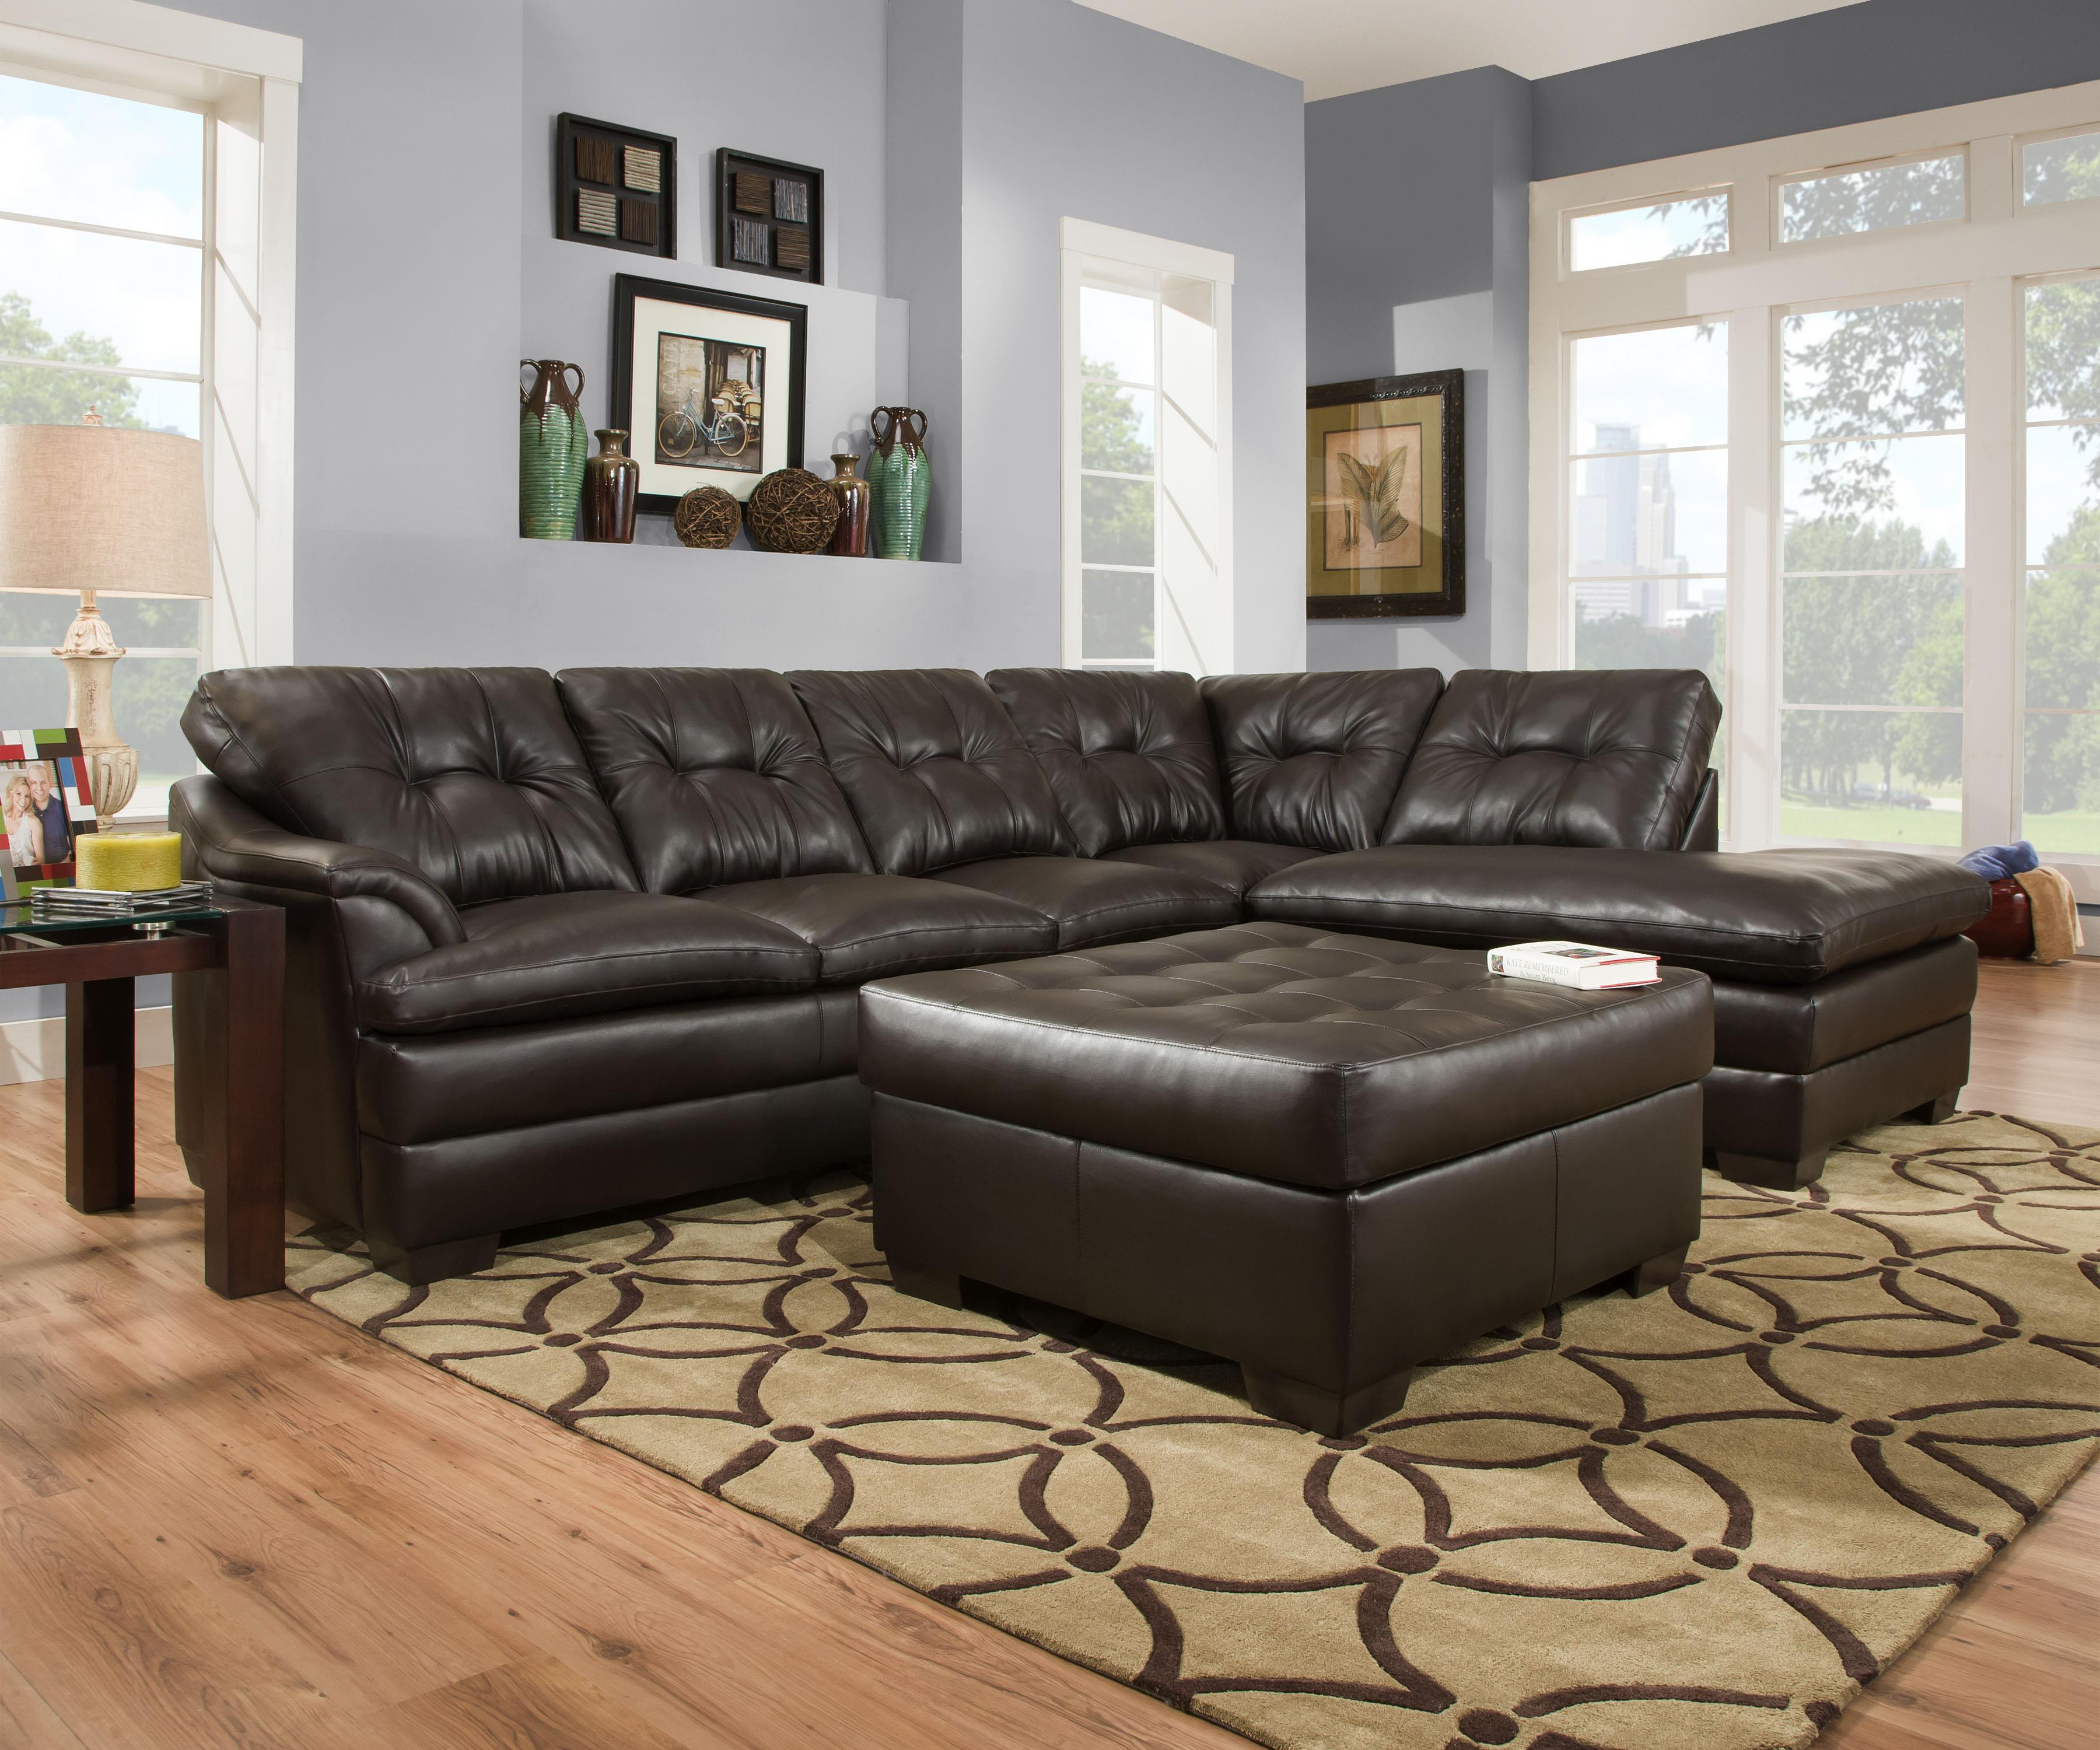 Simmons Upholstery 5122 Stationary Living Room Group - Item Number: 5122 Living Room Group 1